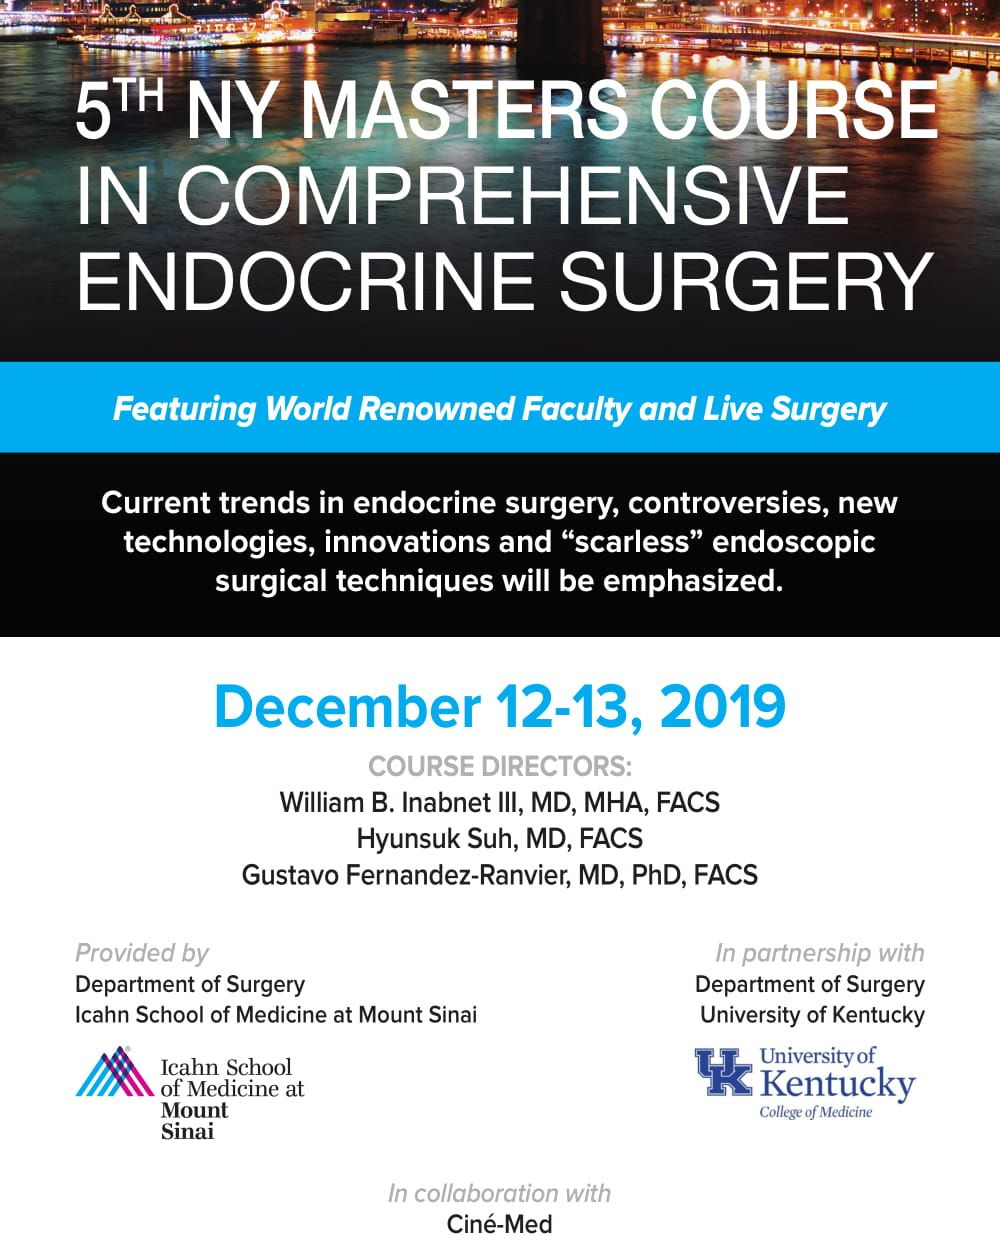 5th NY Masters Course in Comprehensive Endocrine Surgery Banner